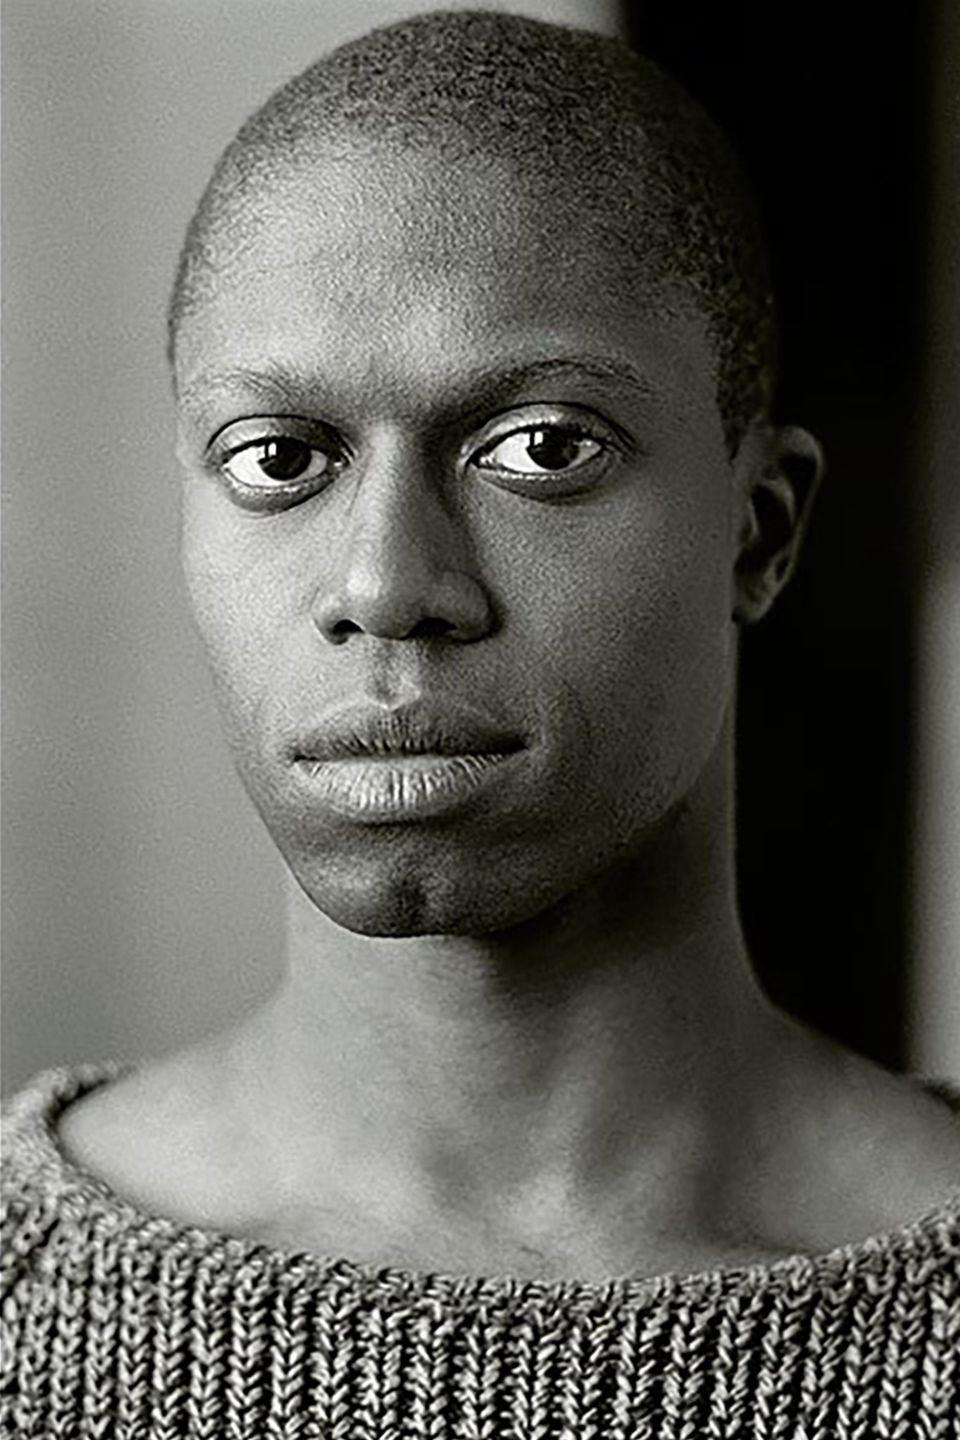 <p>Andre Braugher began his career with a part in the 1989 film <em>Glory</em>, but his breakout role—for which he won an Emmy—was as Frank Pembleton on <em>Homicide: Life on the Street</em> in 1990. </p>